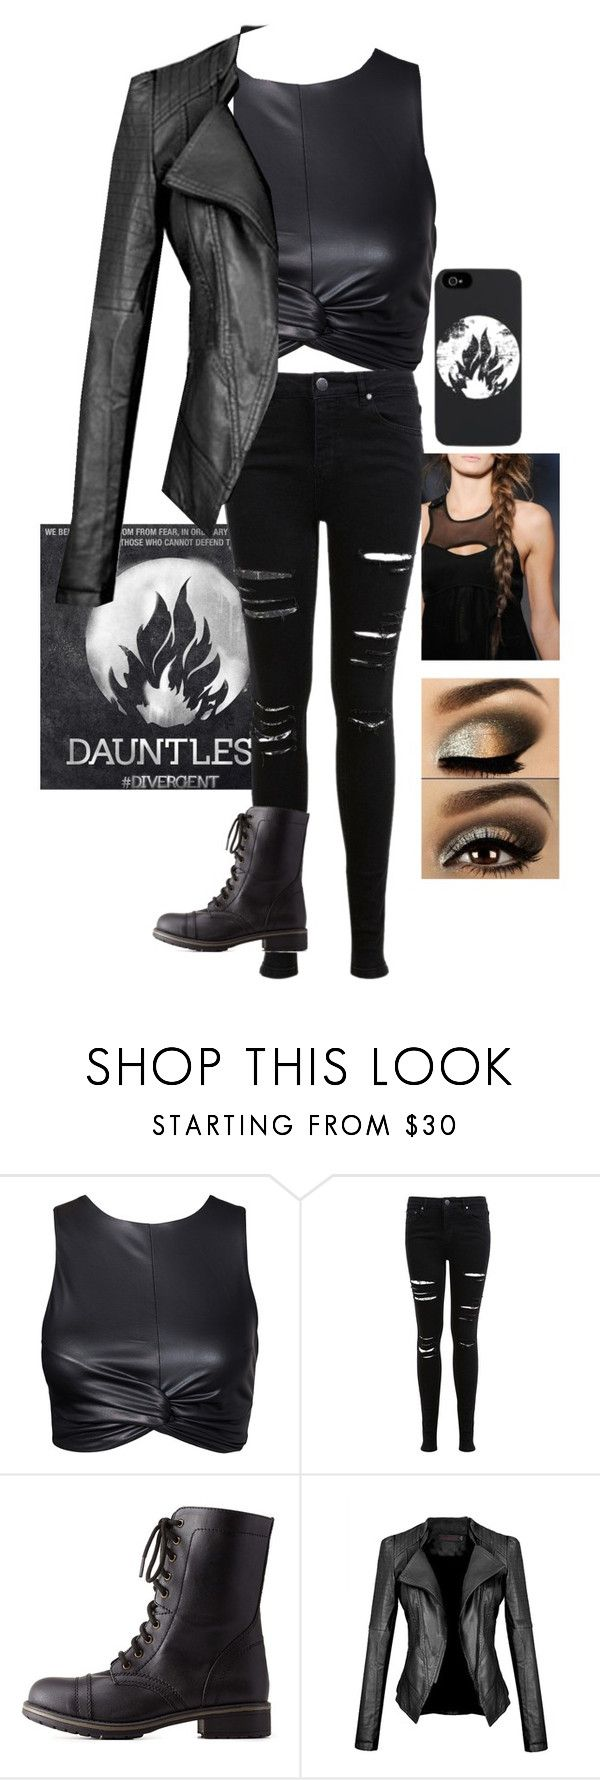 """""""Dauntless Outfit"""" by sparklypinkelephant ❤ liked on Polyvore featuring Miss Selfridge and Charlotte Russe"""